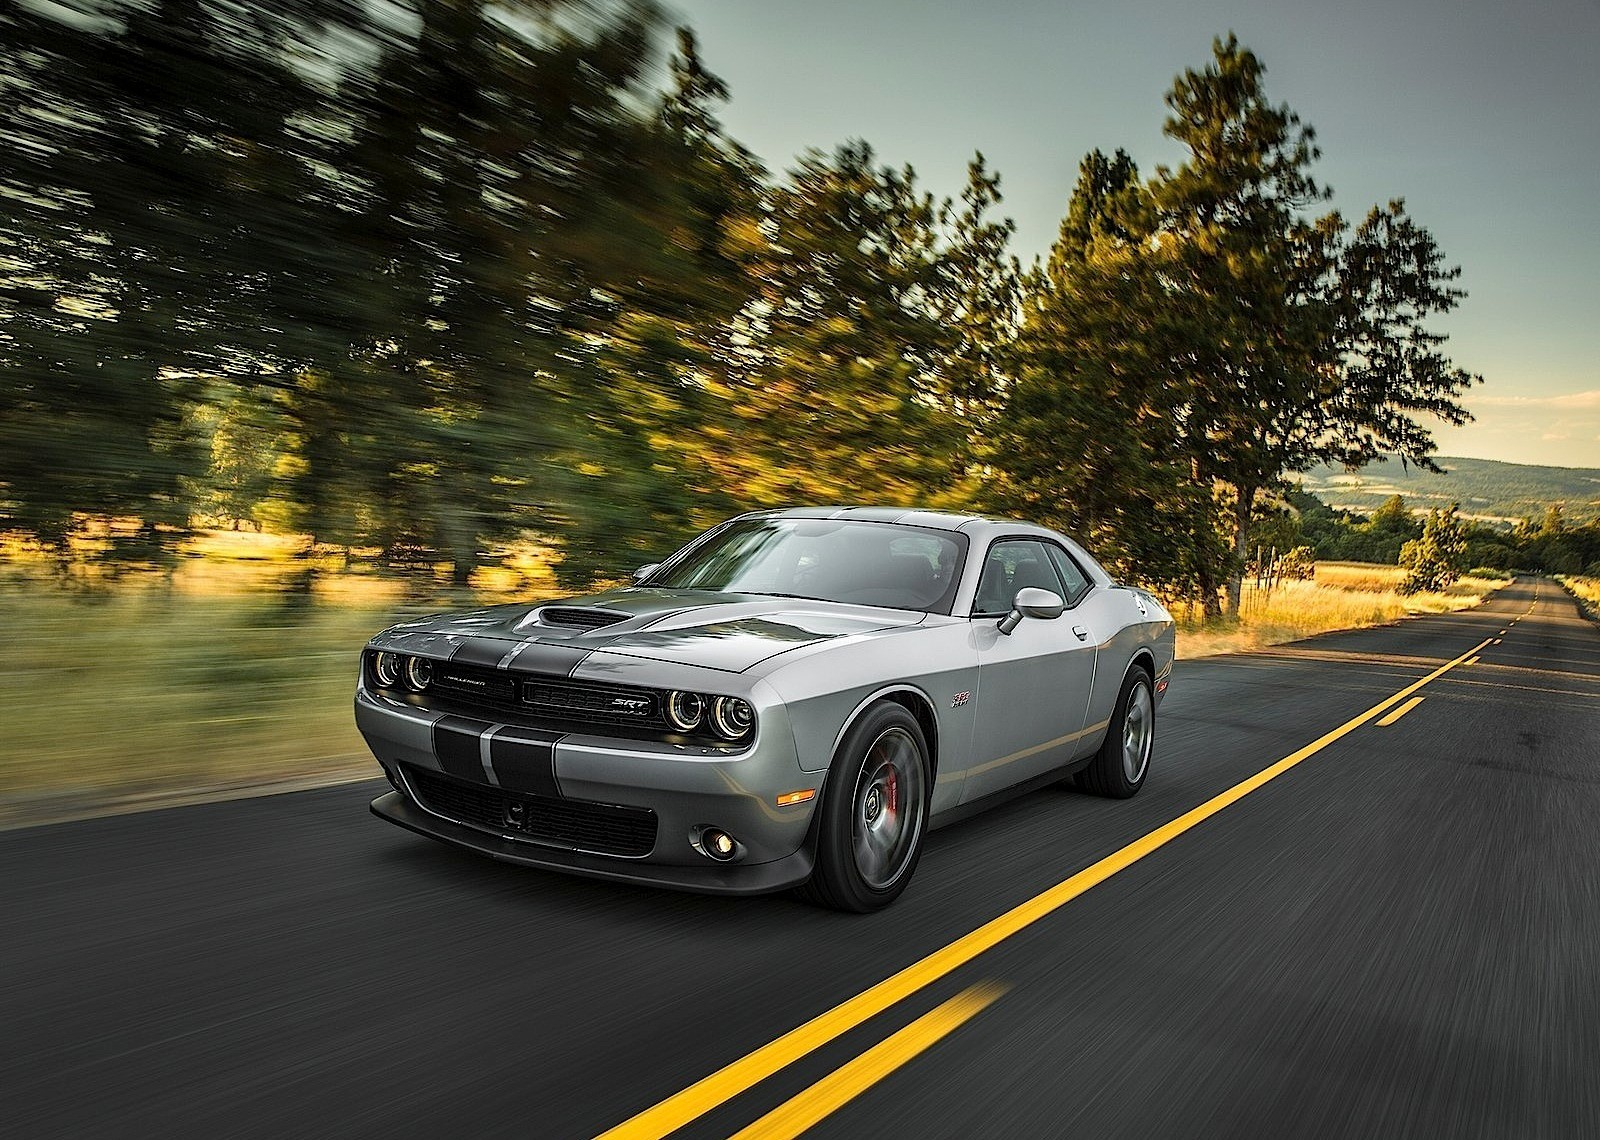 12 Photos 2019 Dodge Charger Srt